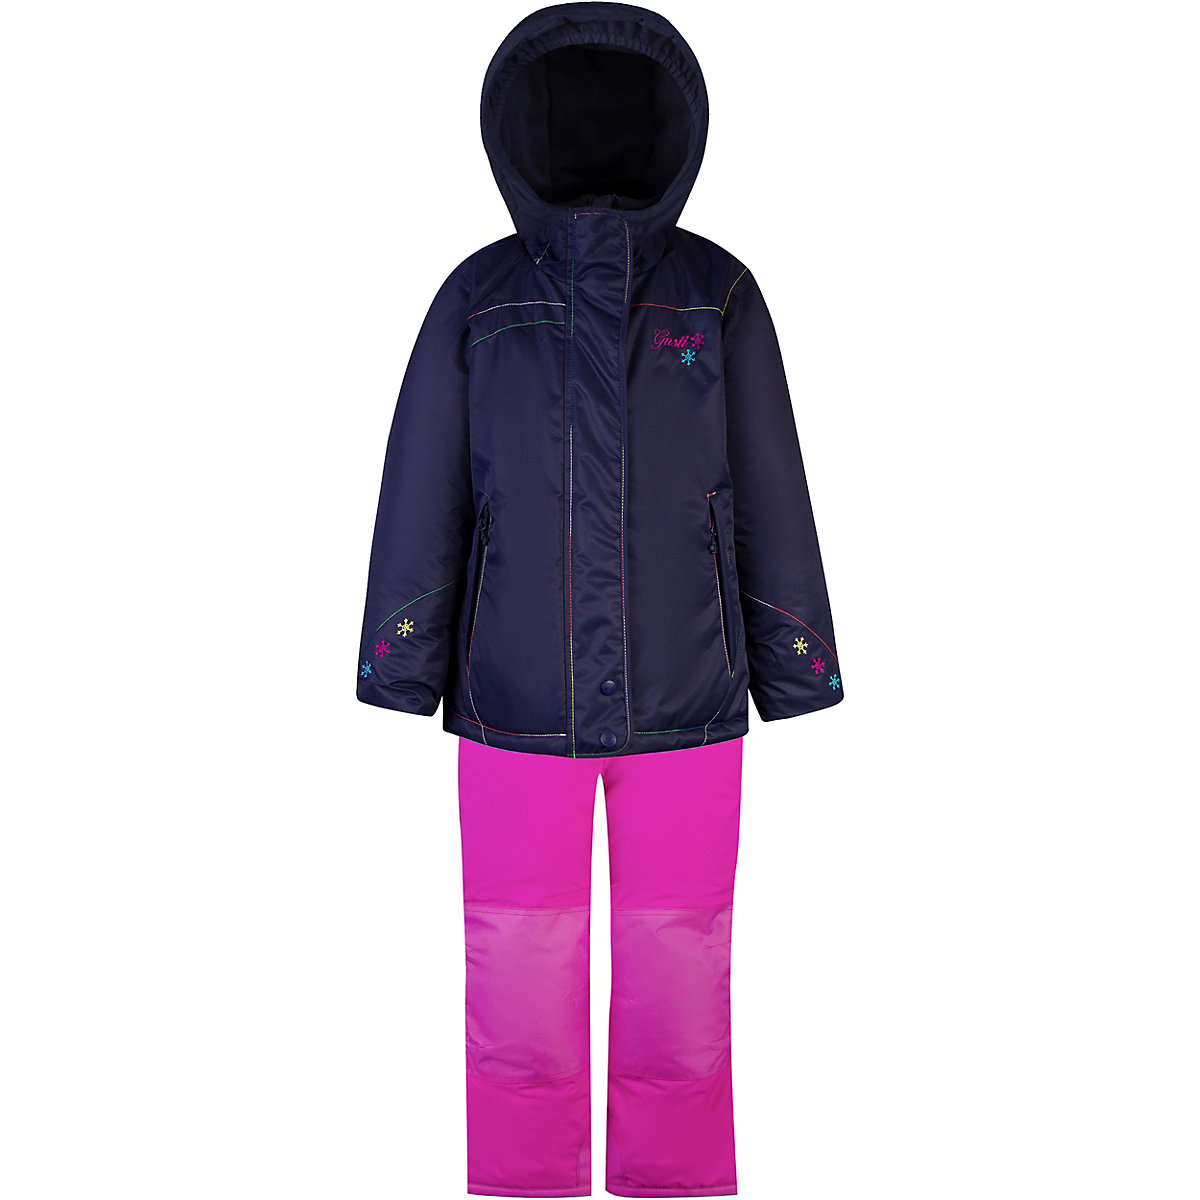 GUSTI Children's Sets 9512028 clothing for girls set dress winter clothes girl kids wear 1toy королевская кобра черная на ик управлении 45 см т11394